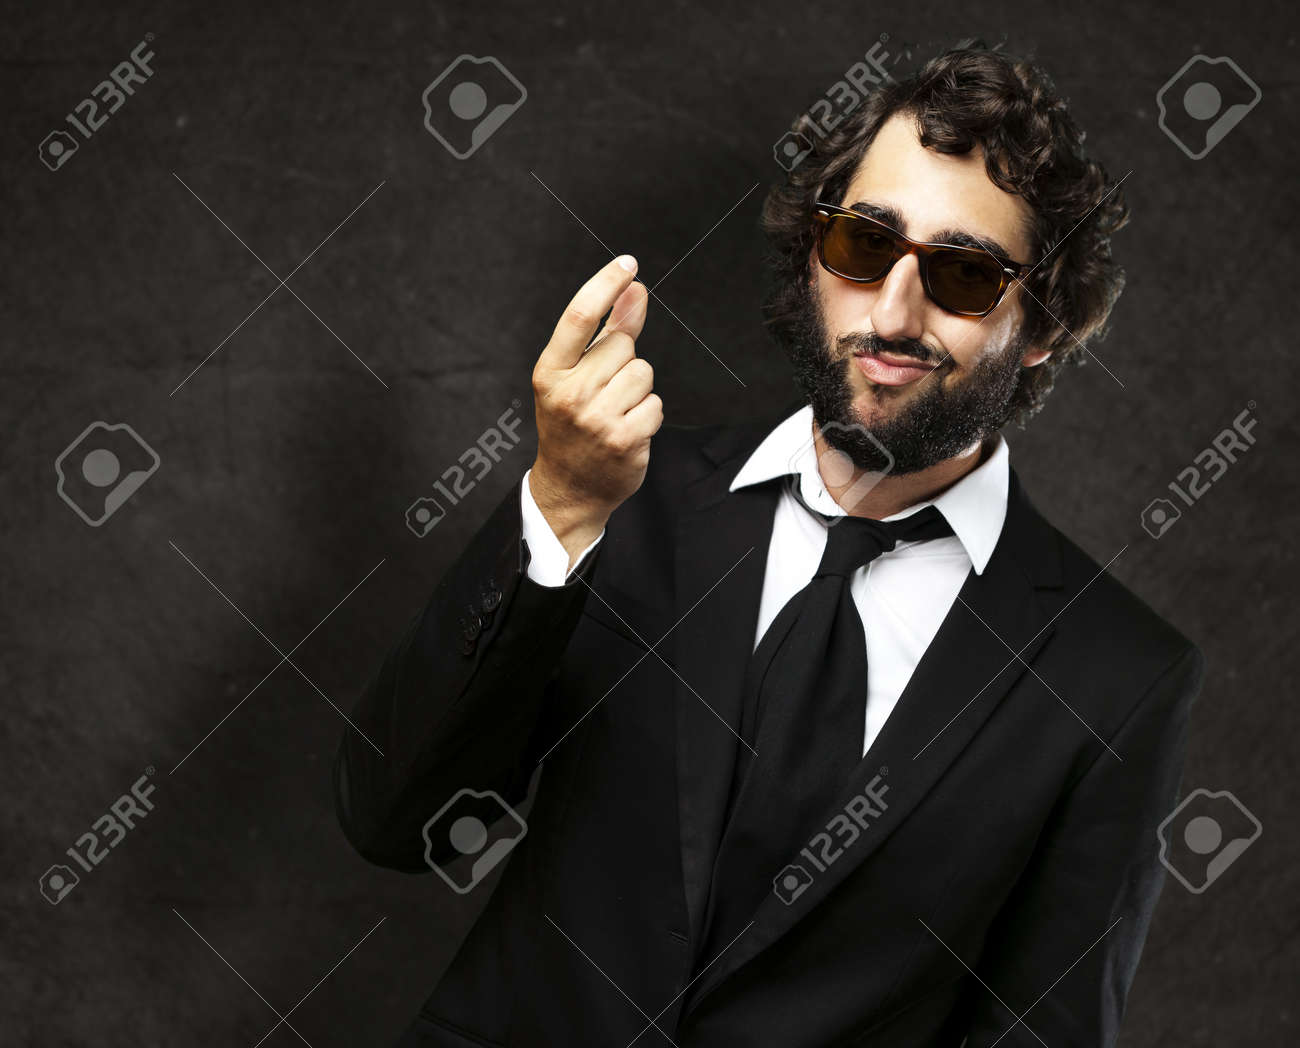 portrait of young business man gesturing money against a grunge wall Stock Photo - 13156319